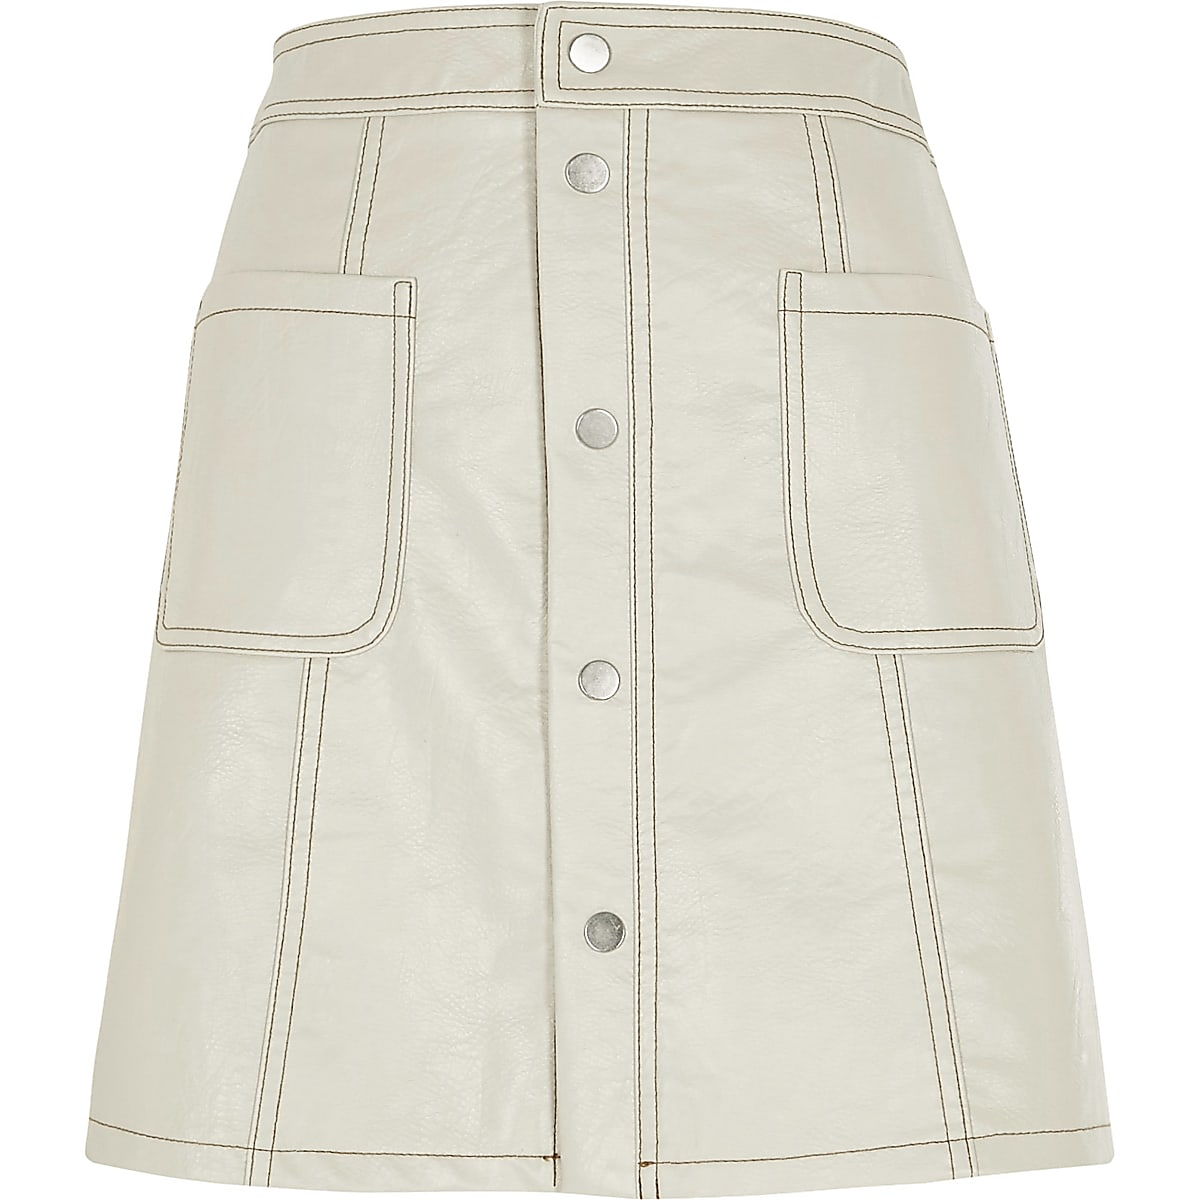 4ebdc5dbe2 Cream faux leather A line mini skirt - Mini Skirts - Skirts - women